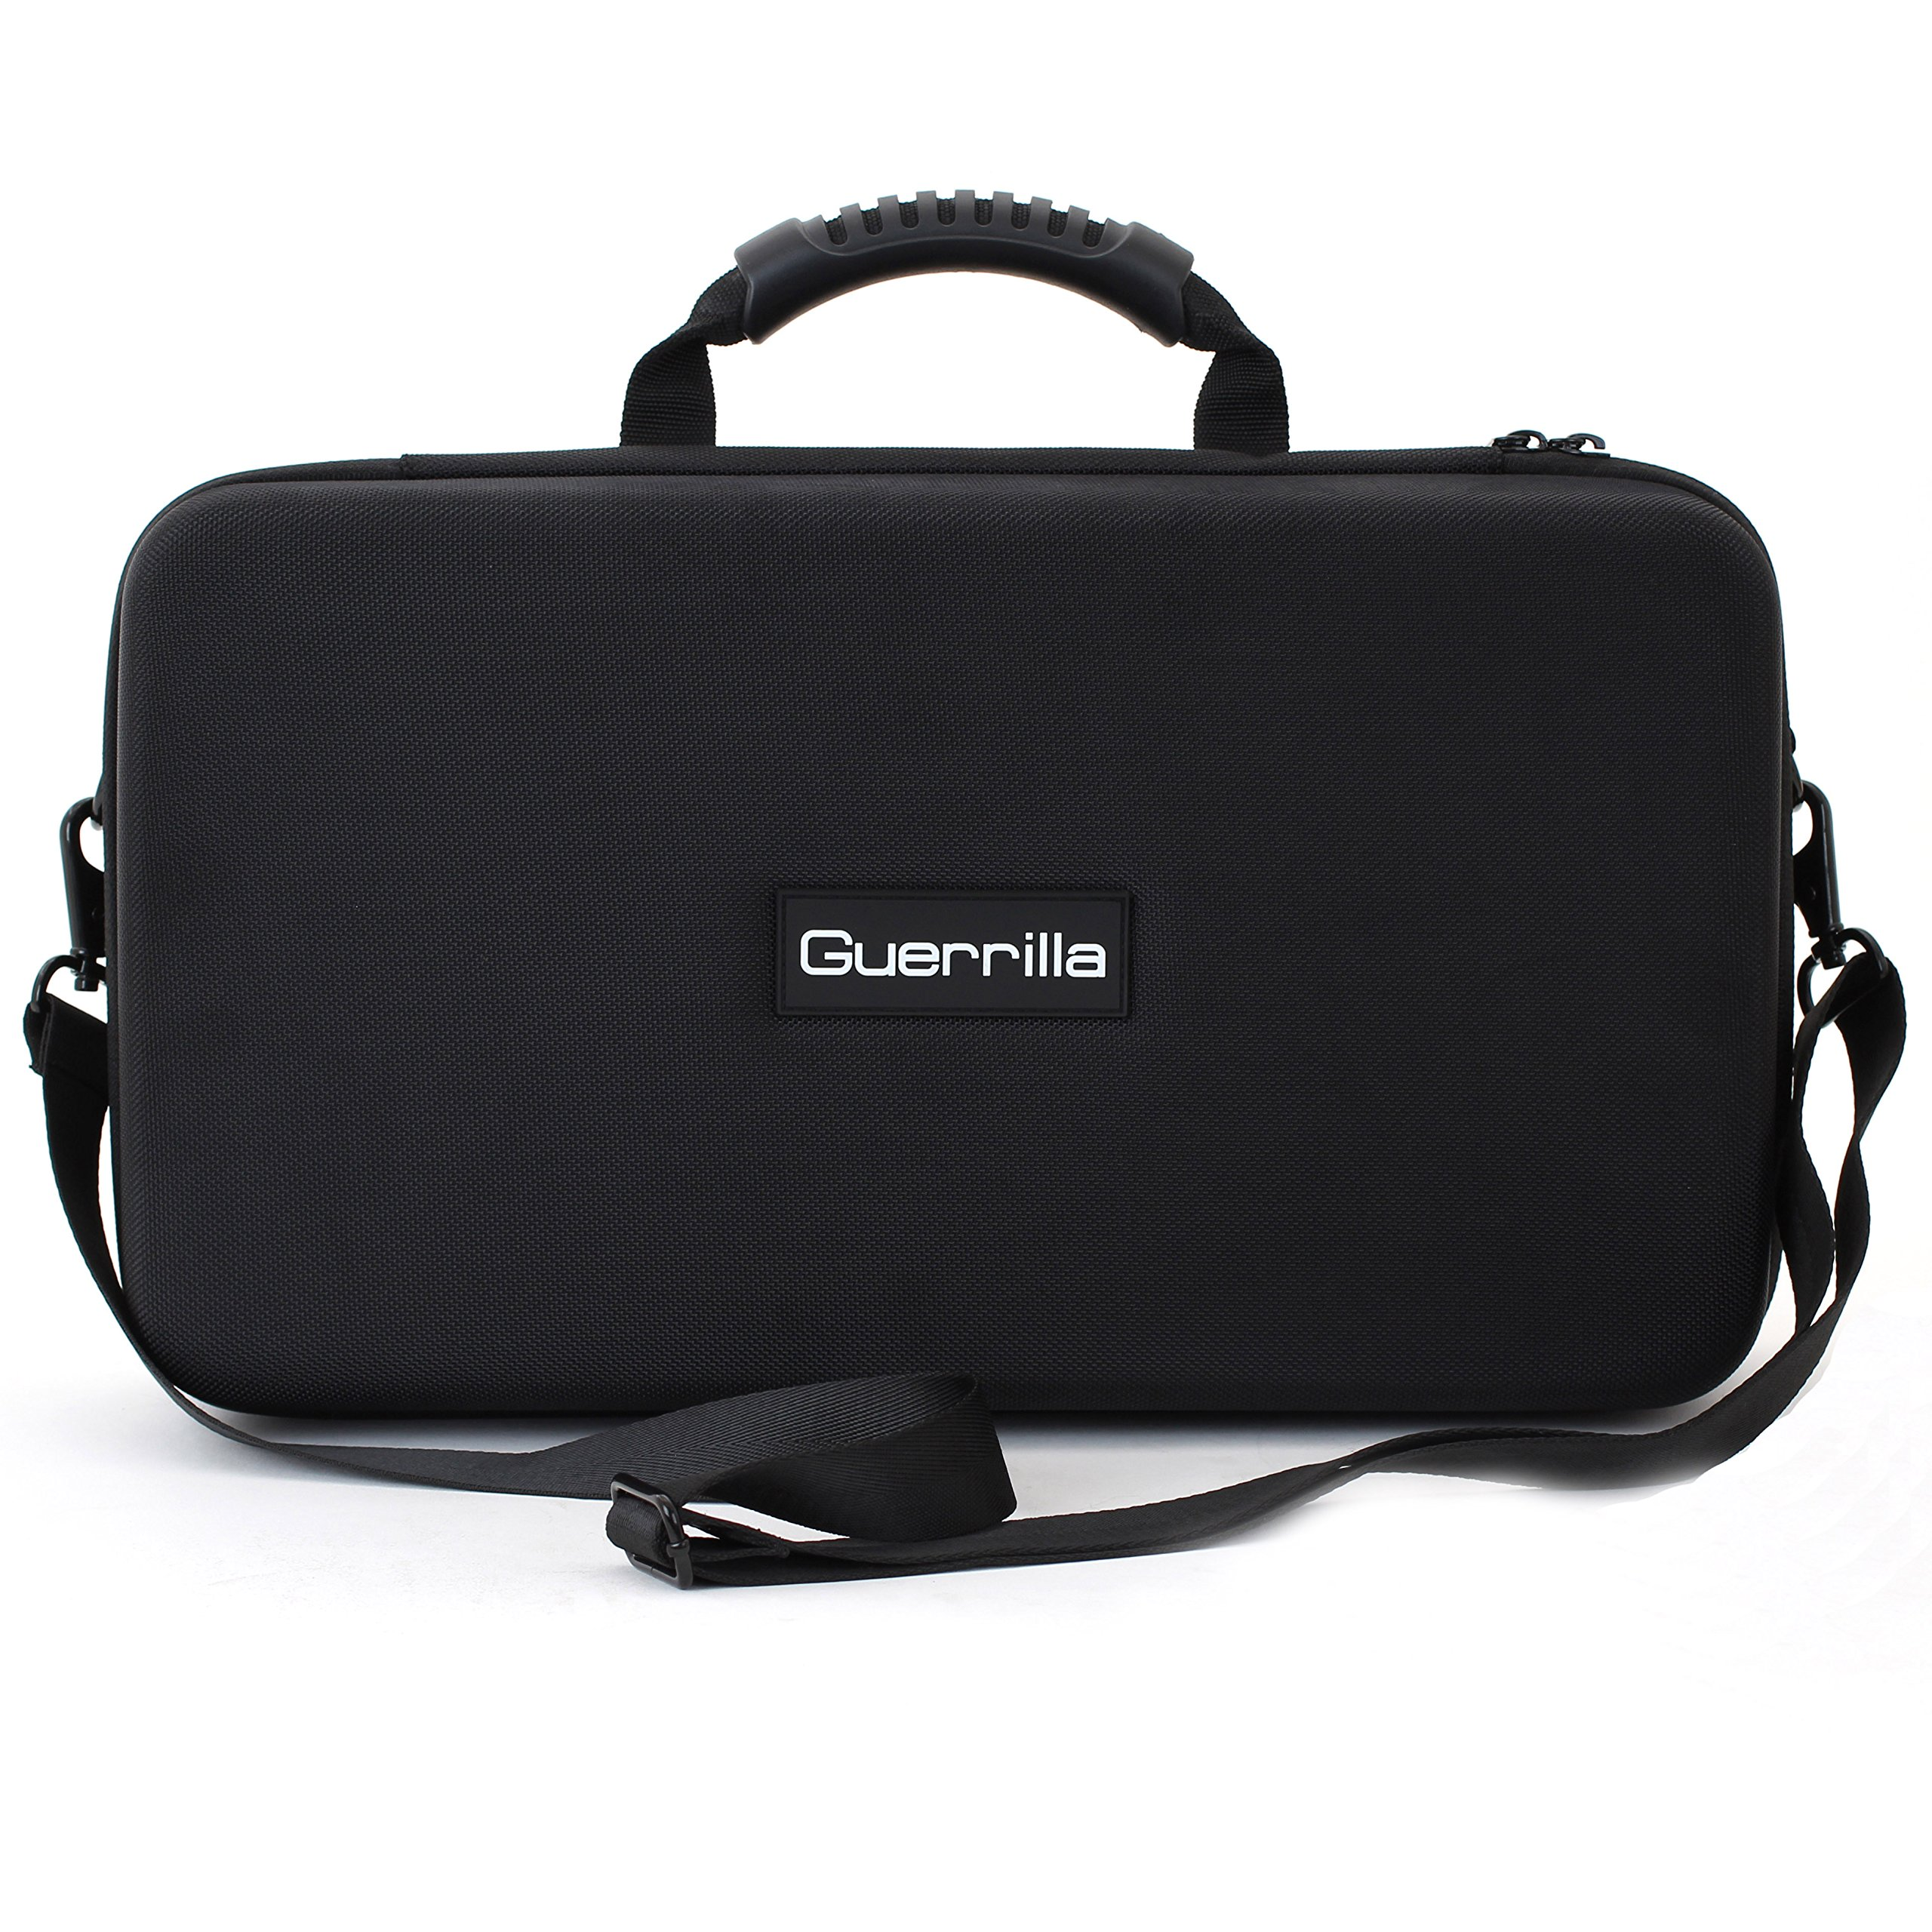 Guerrilla Hard Travel Case for TI-84 Plus Teacher Packs, Holds up to 10 Graphing Calculators, Black (CALCULATORS NOT INCLUDED)